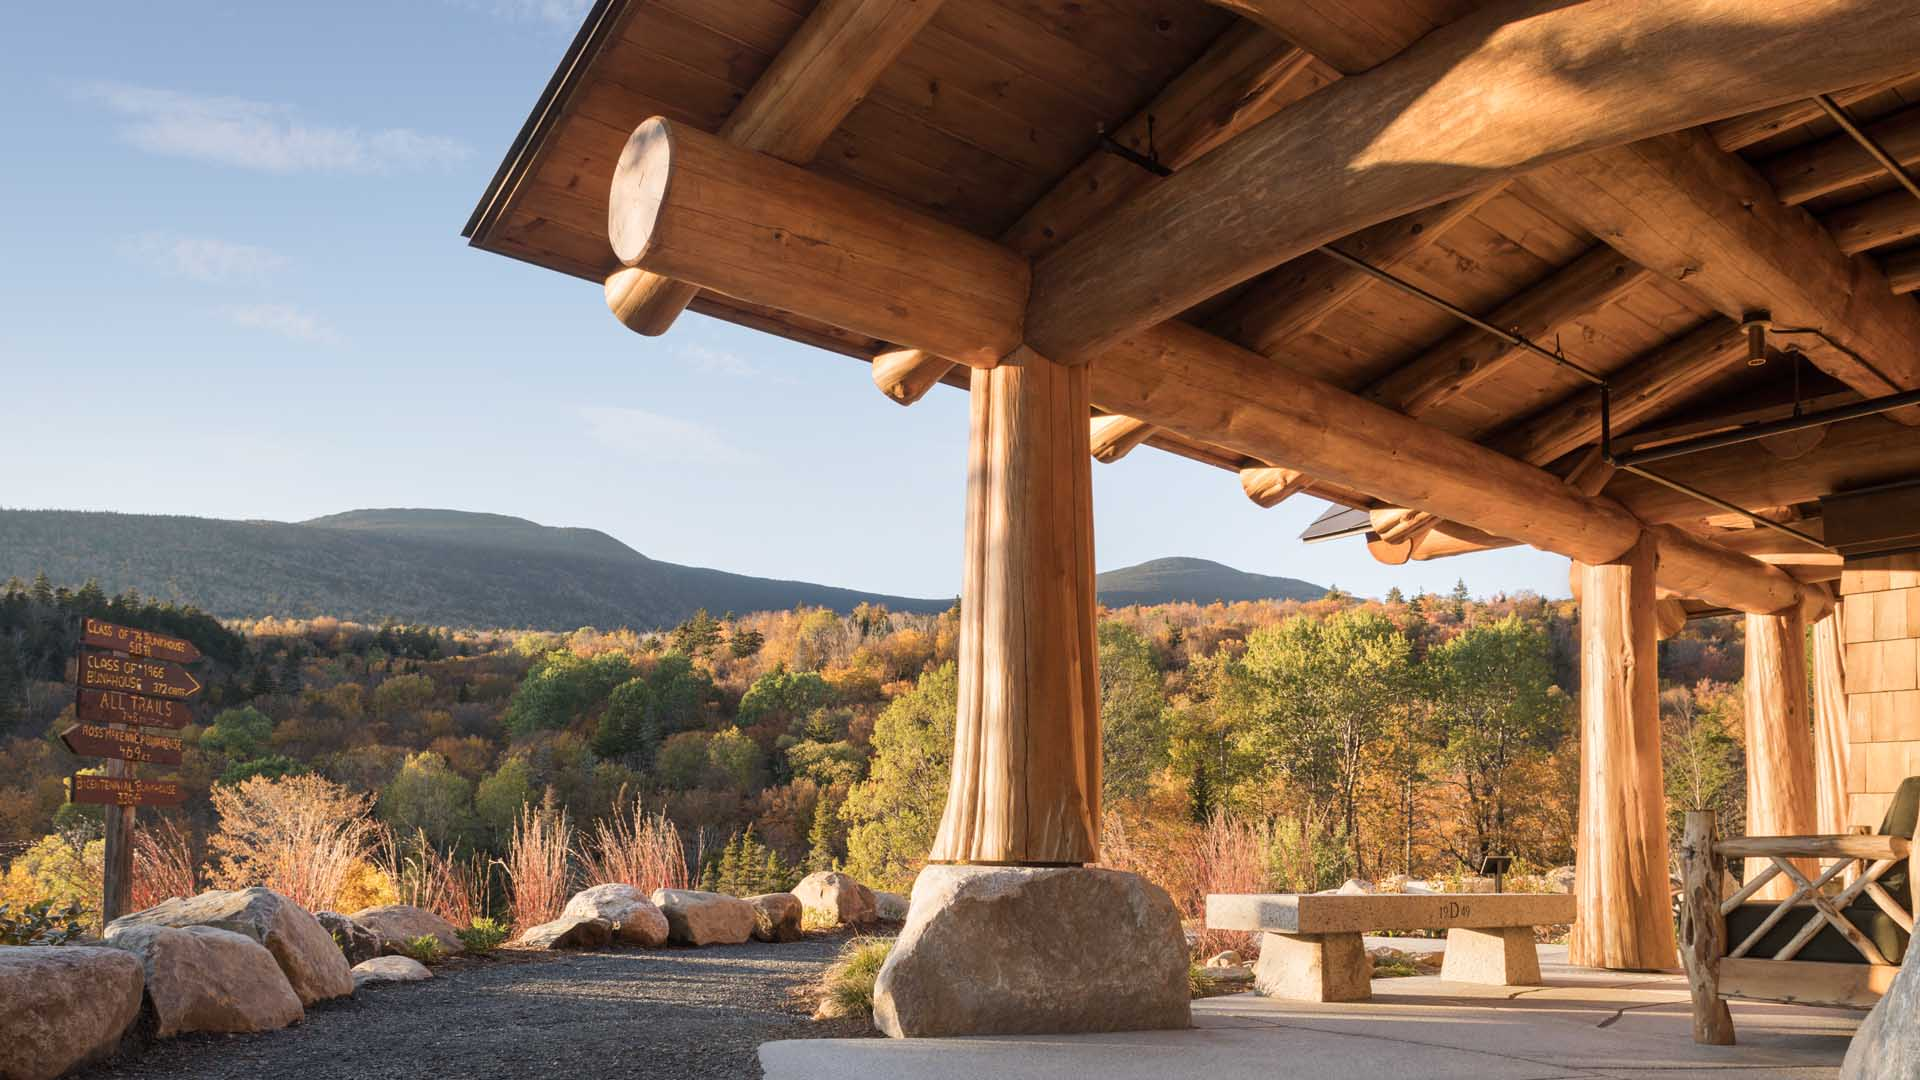 Architecture and design of Moosilauke Ravine Lodge - Warren, New Hampshire